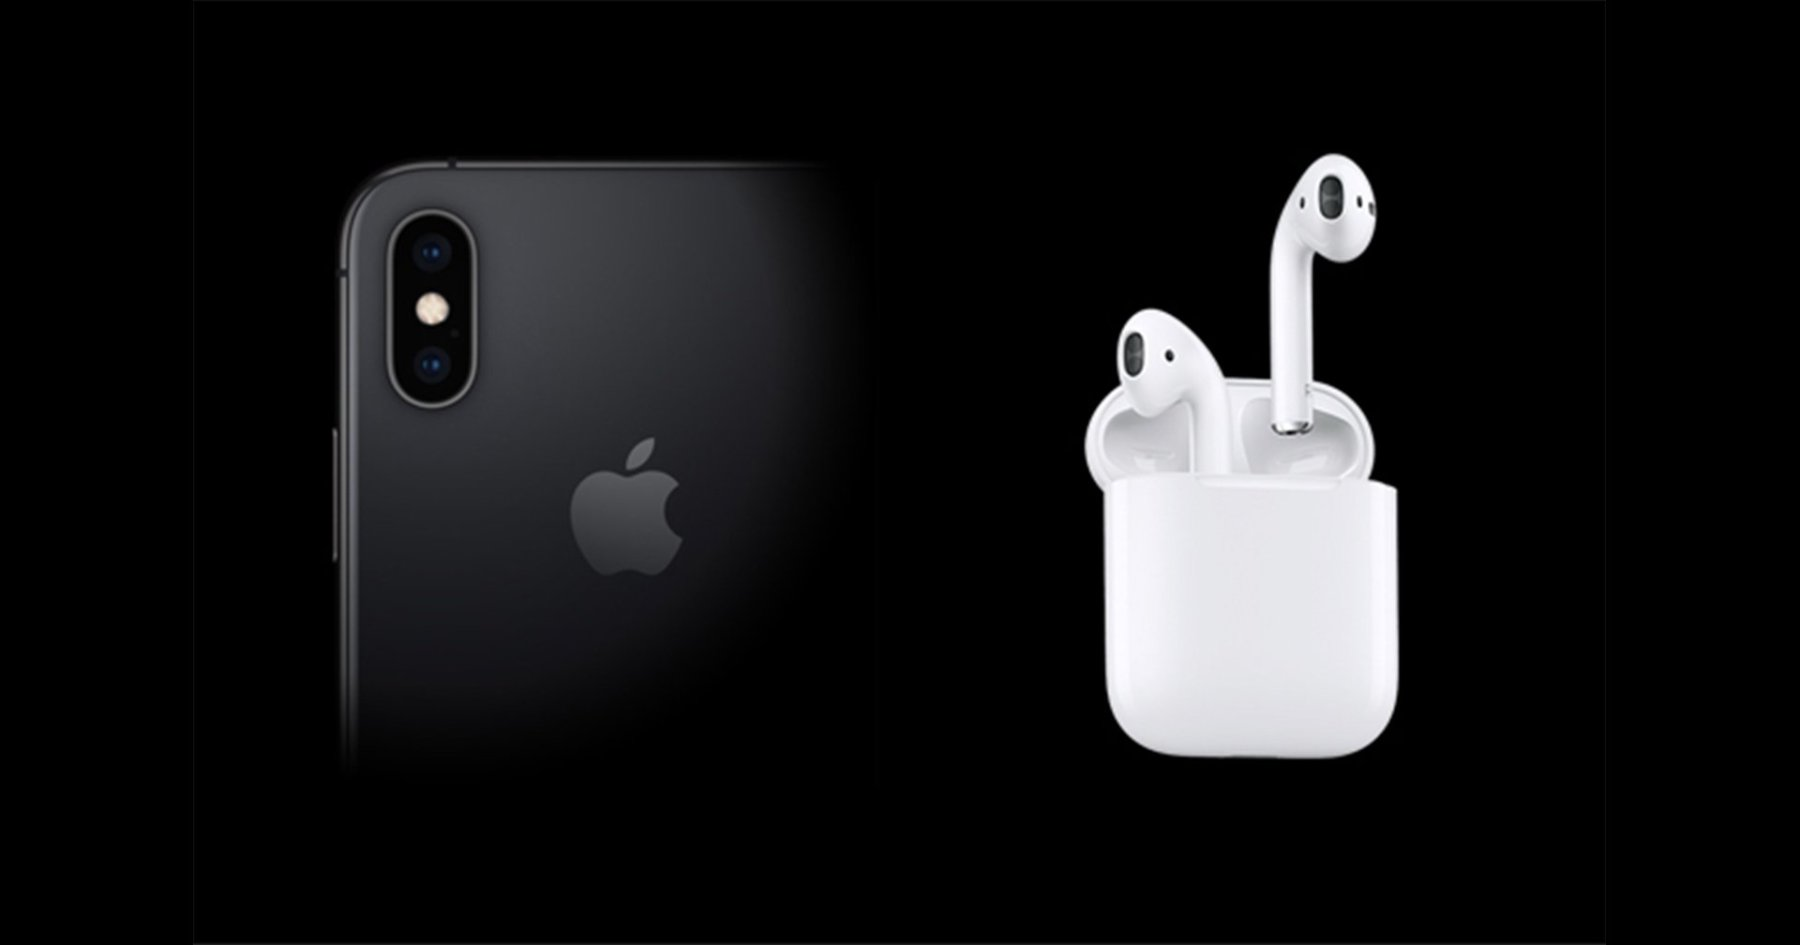 iPhone 9 or iPhone SE 2 is Up for Pre-Order with Free Apple AirPods